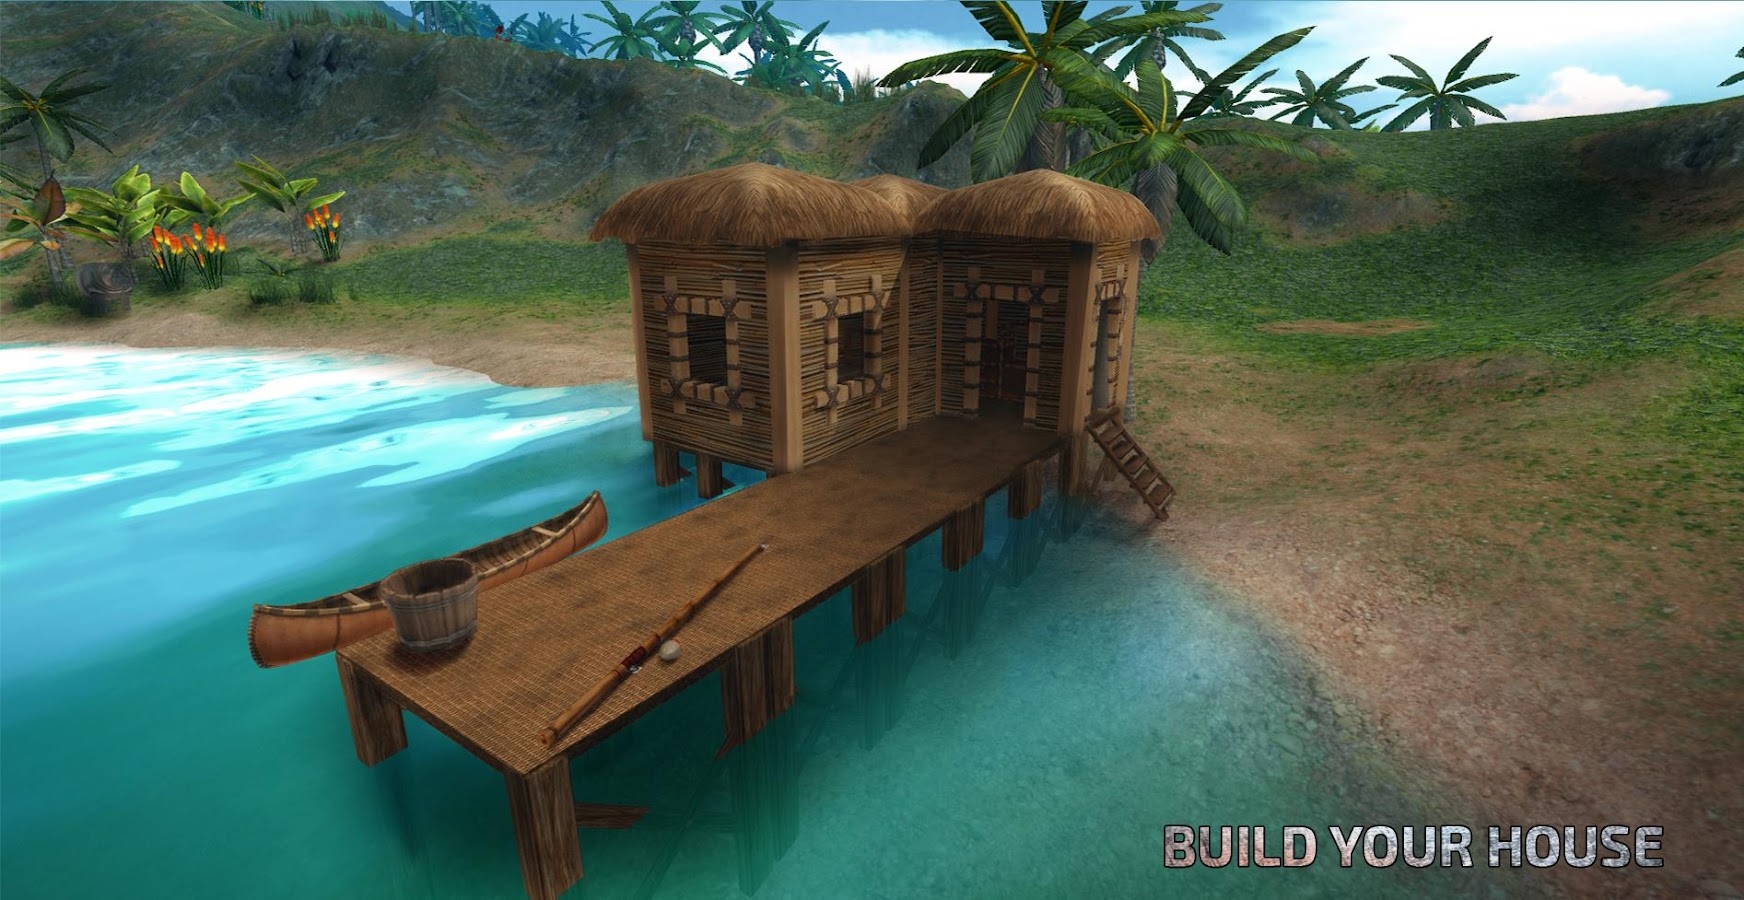 Survival island evolve survivor building home android apps on google play Create a house online game